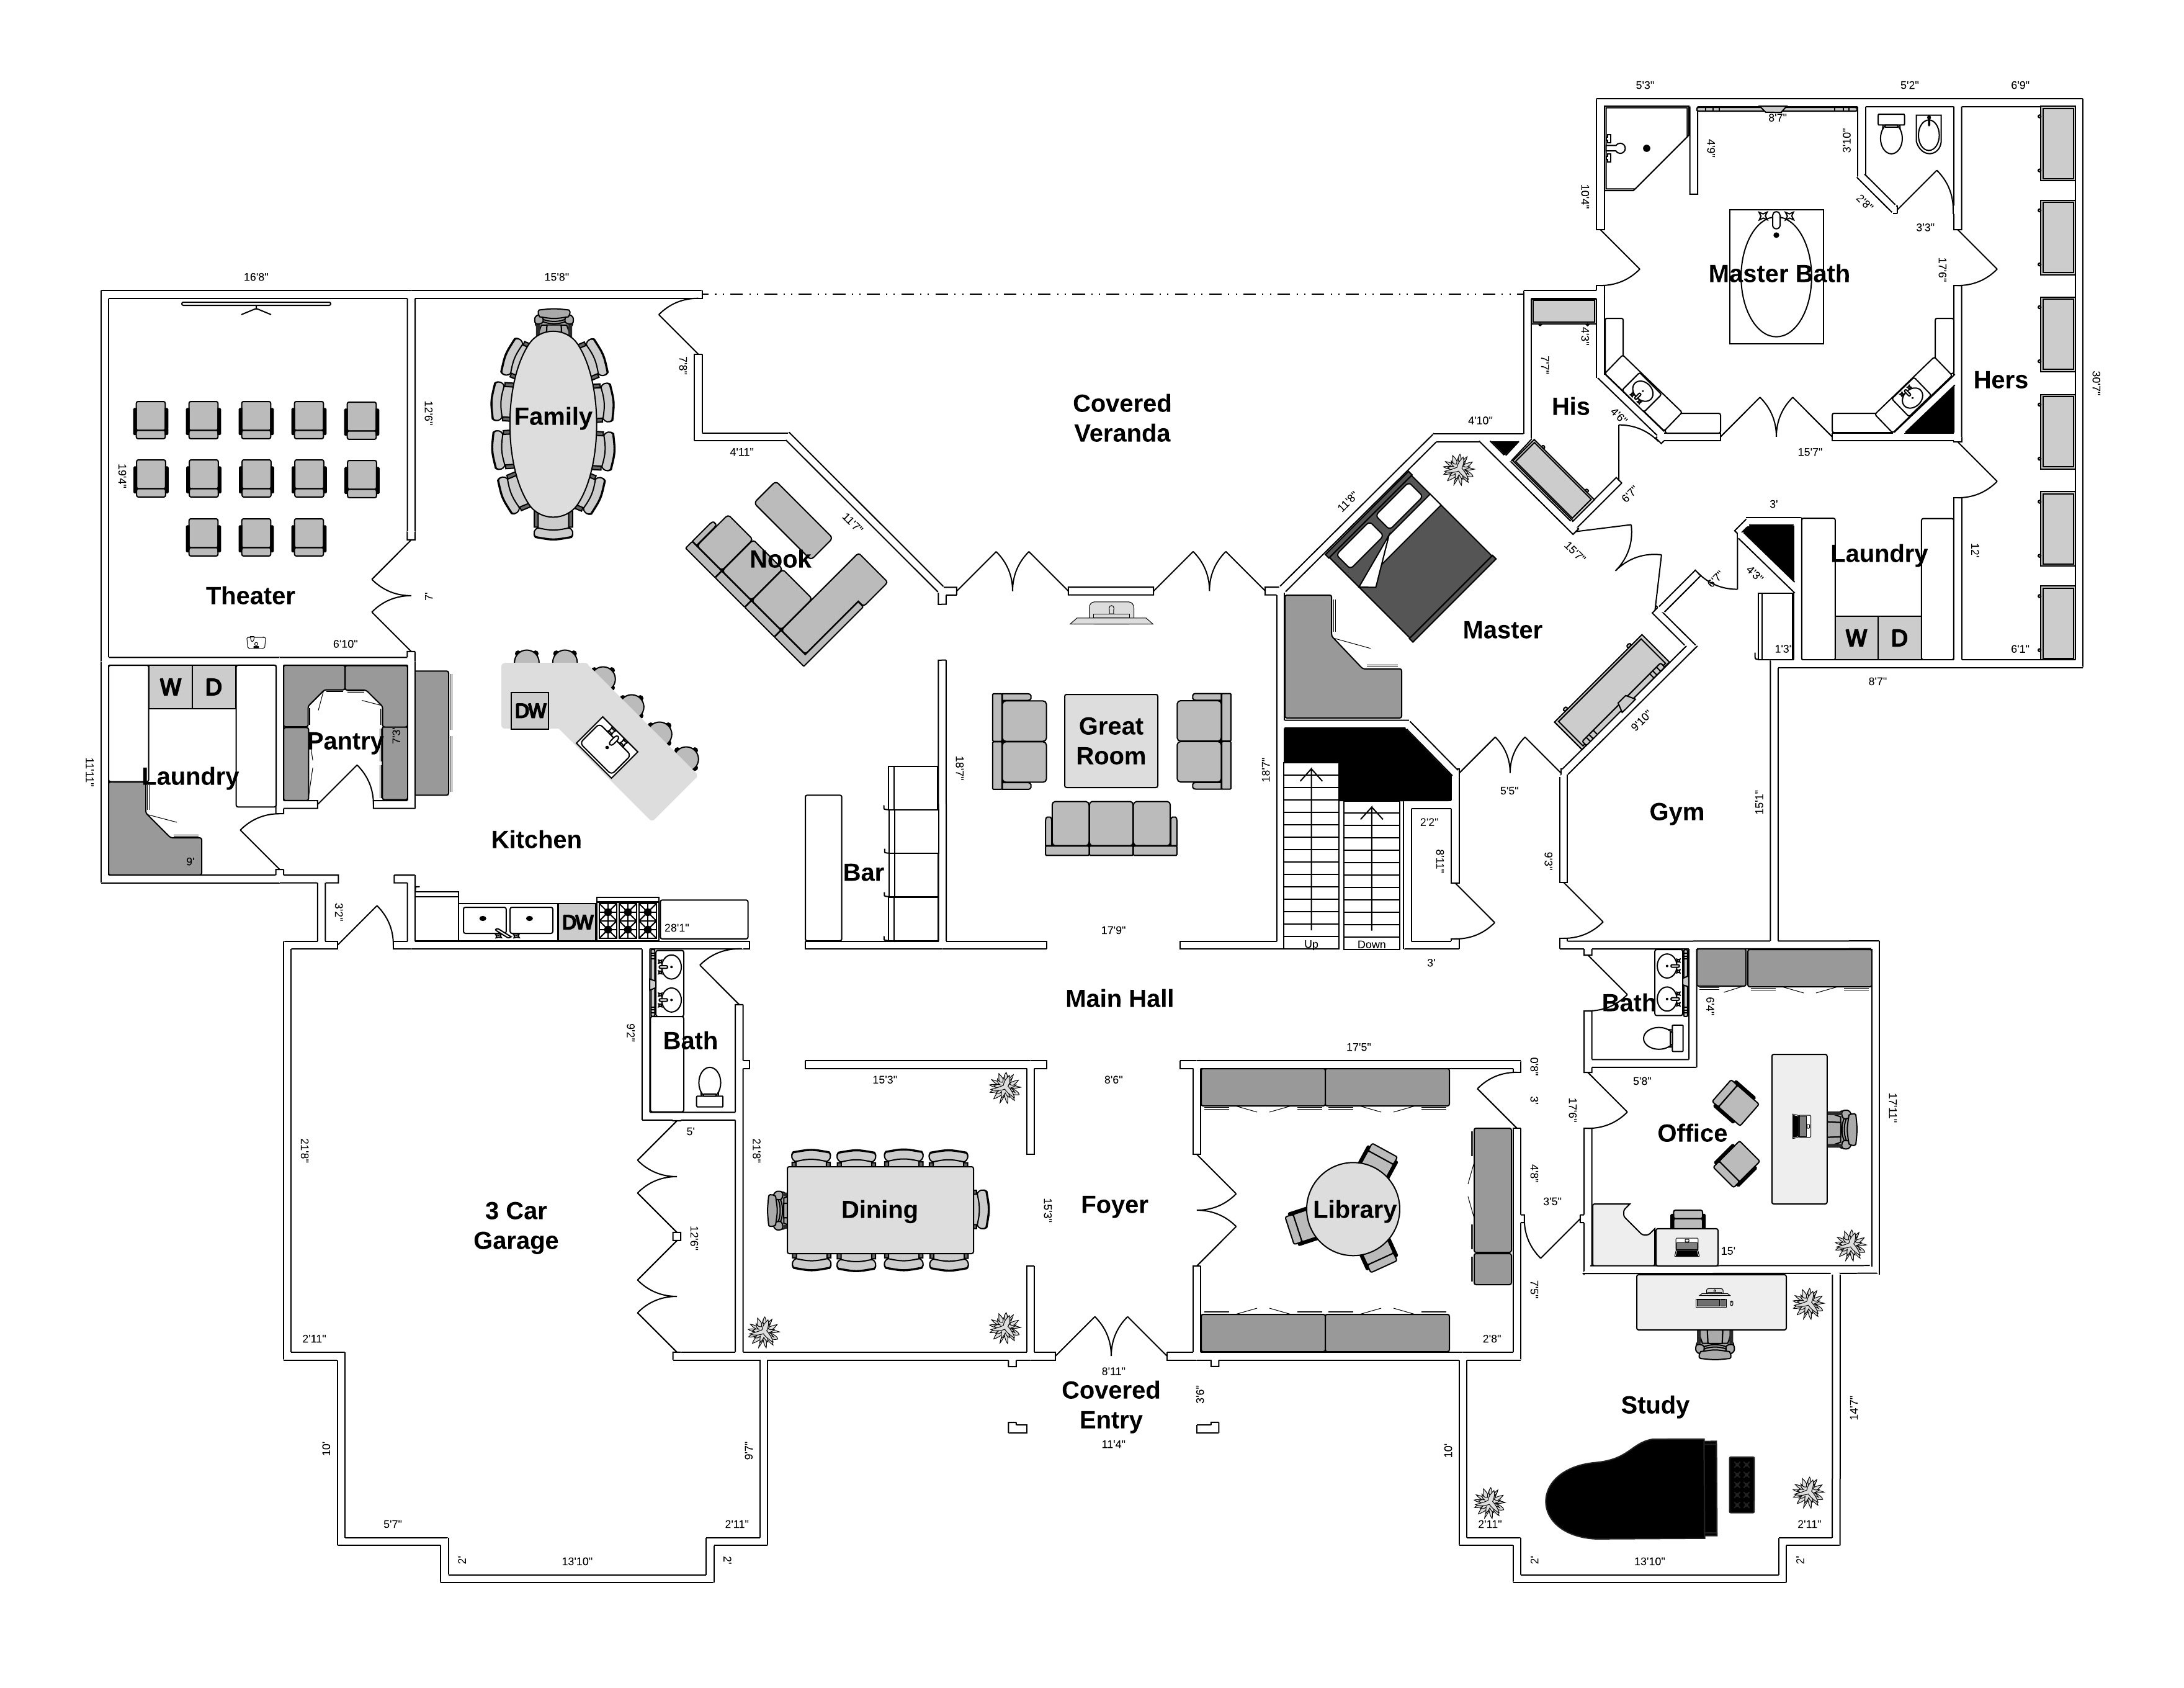 Luxury House Plans Free Floor Plans For Your Dream Home Free Floor Plans Luxury House Plans Floor Plans